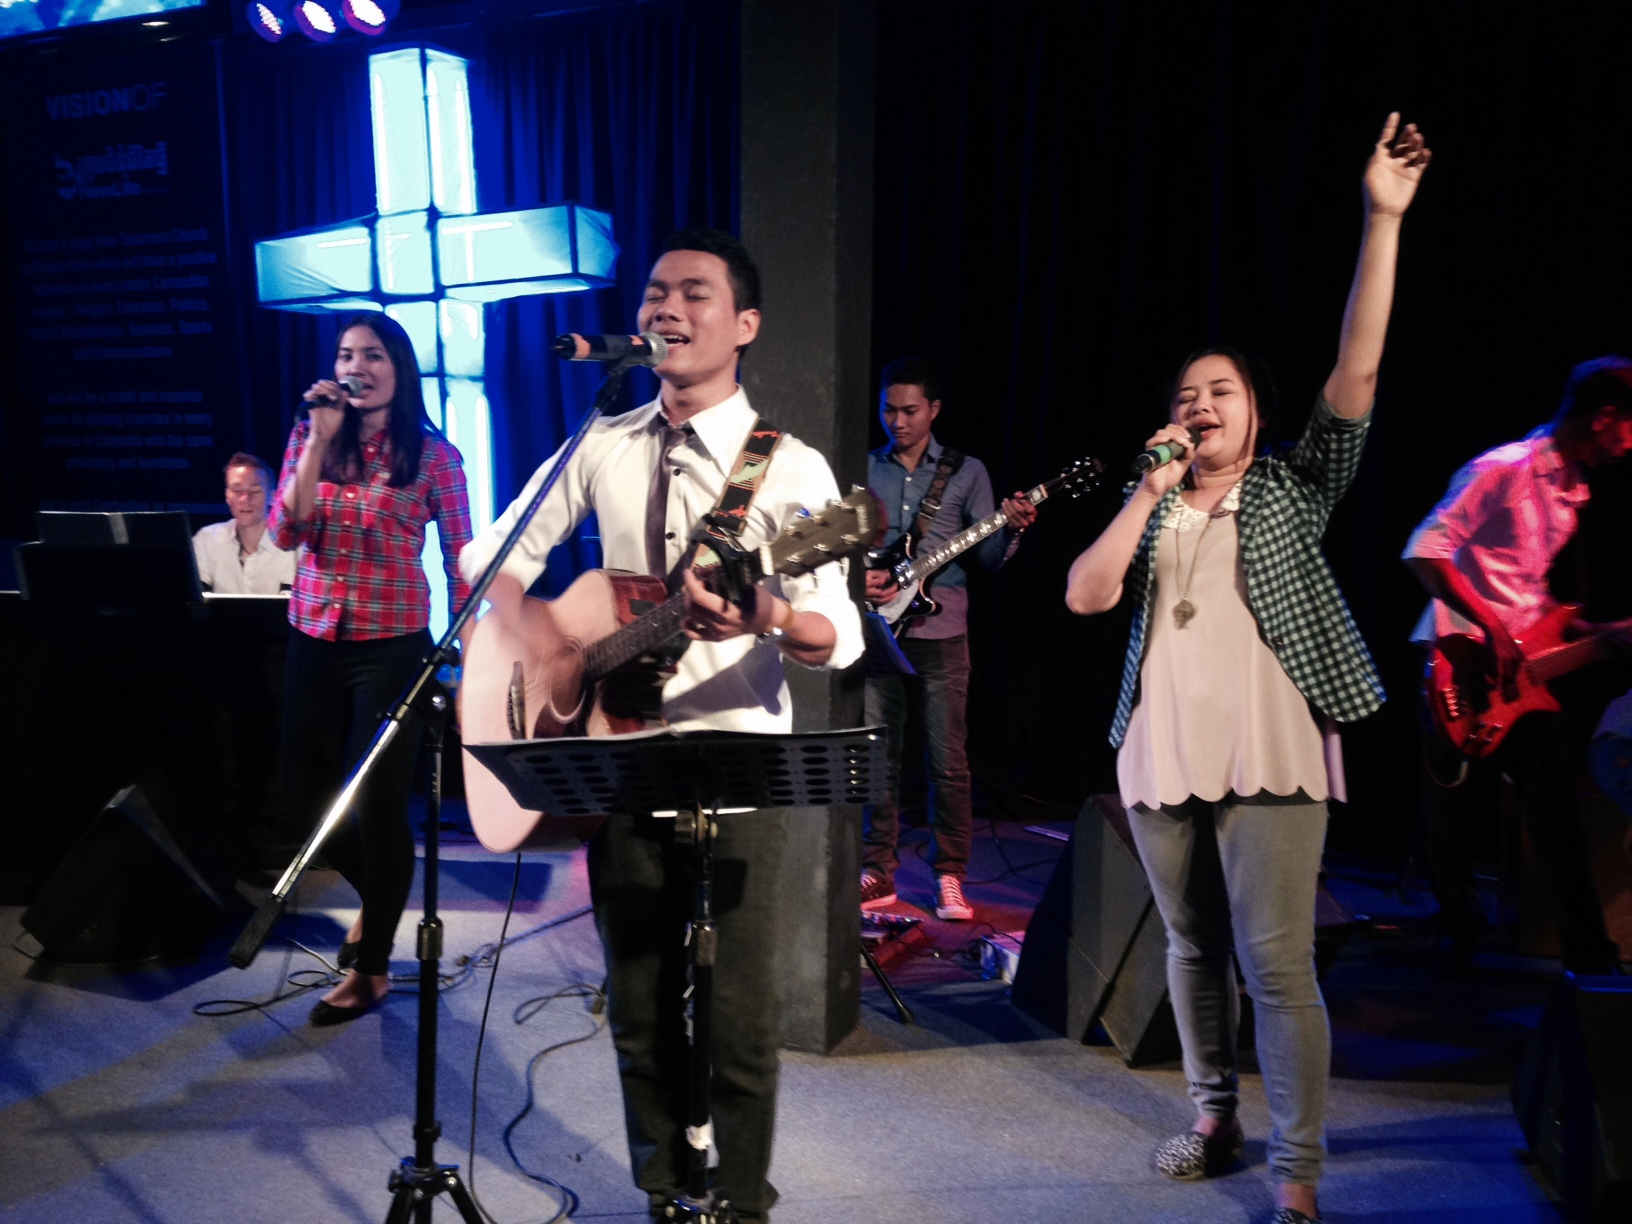 the New Life Fellowship worship team is one of our favorites anywhere in the world, and today was exceptional - such a strong move of the Spirit!